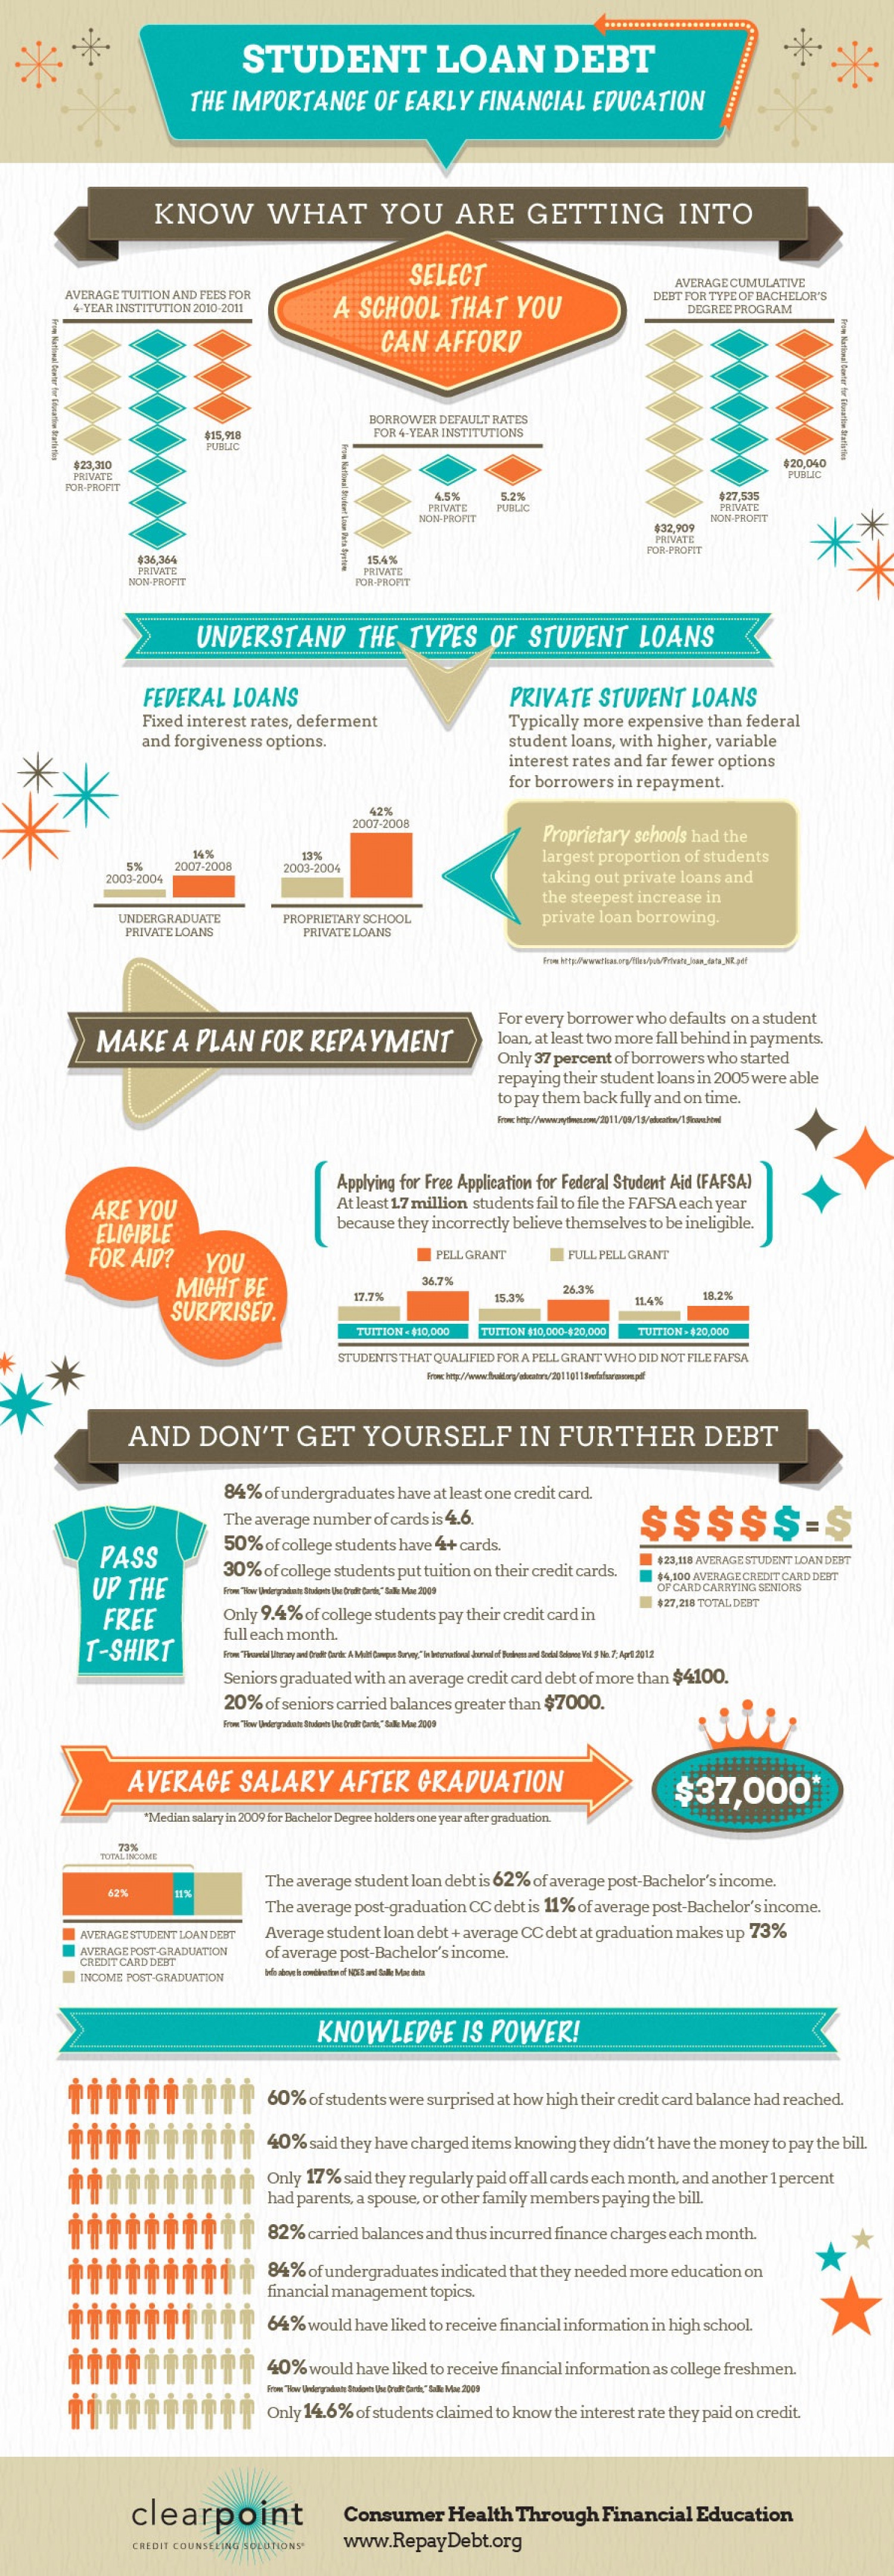 Student Loan Debt: The Importance of Early Financial Education Infographic